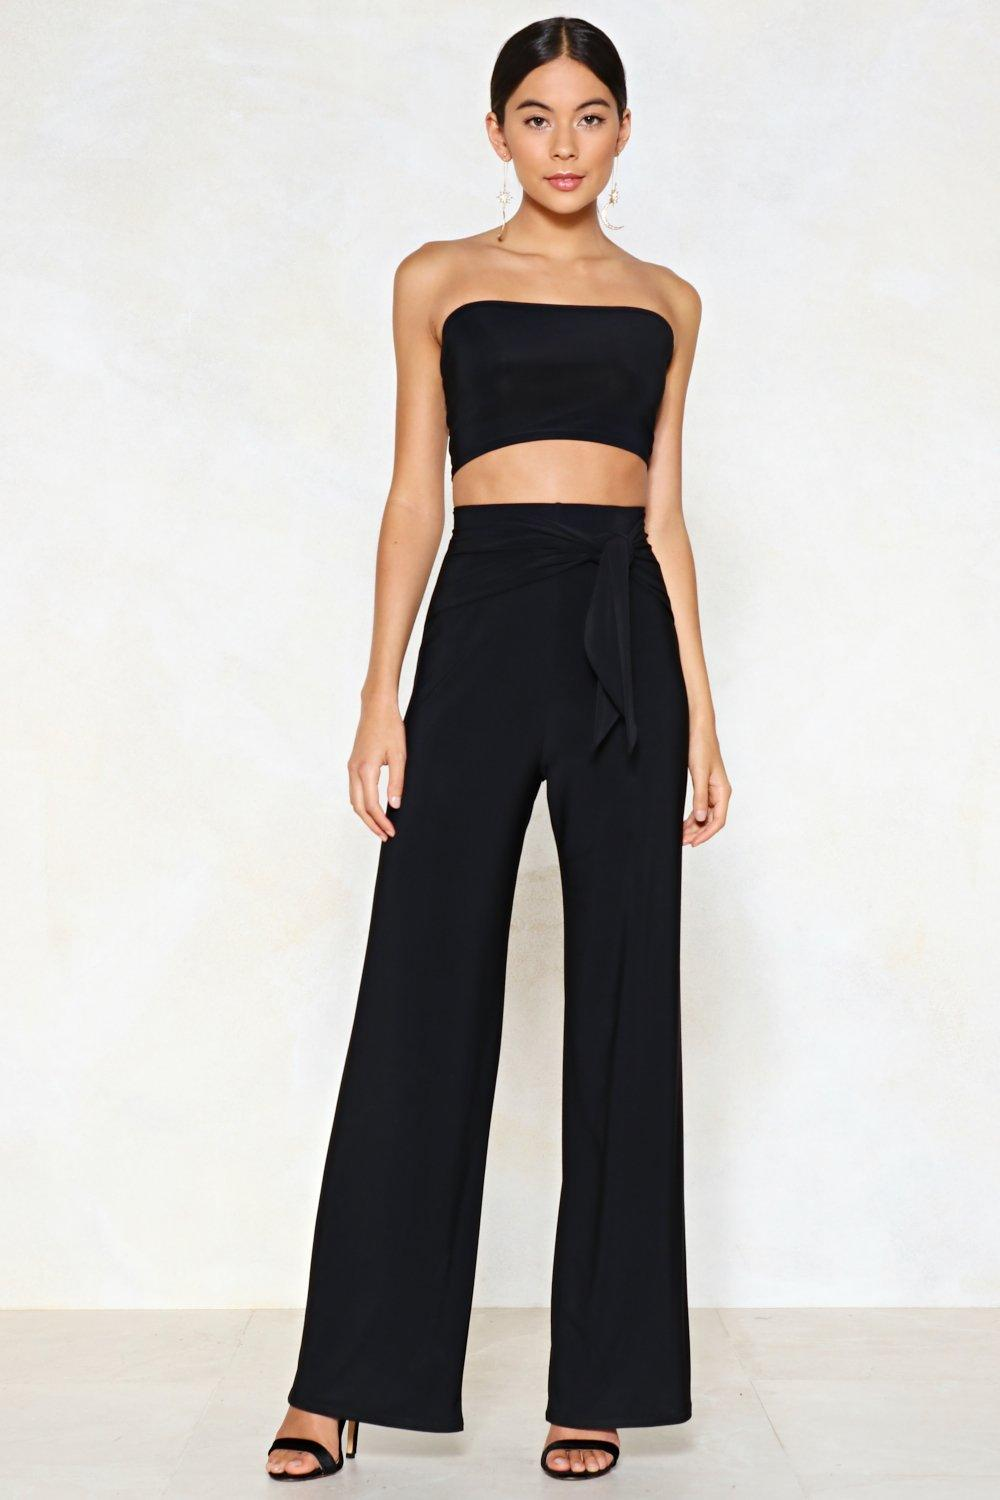 Tie Me Later Bandeau Top and Wide-Leg Pants Set | Shop Clothes at Nasty Gal!